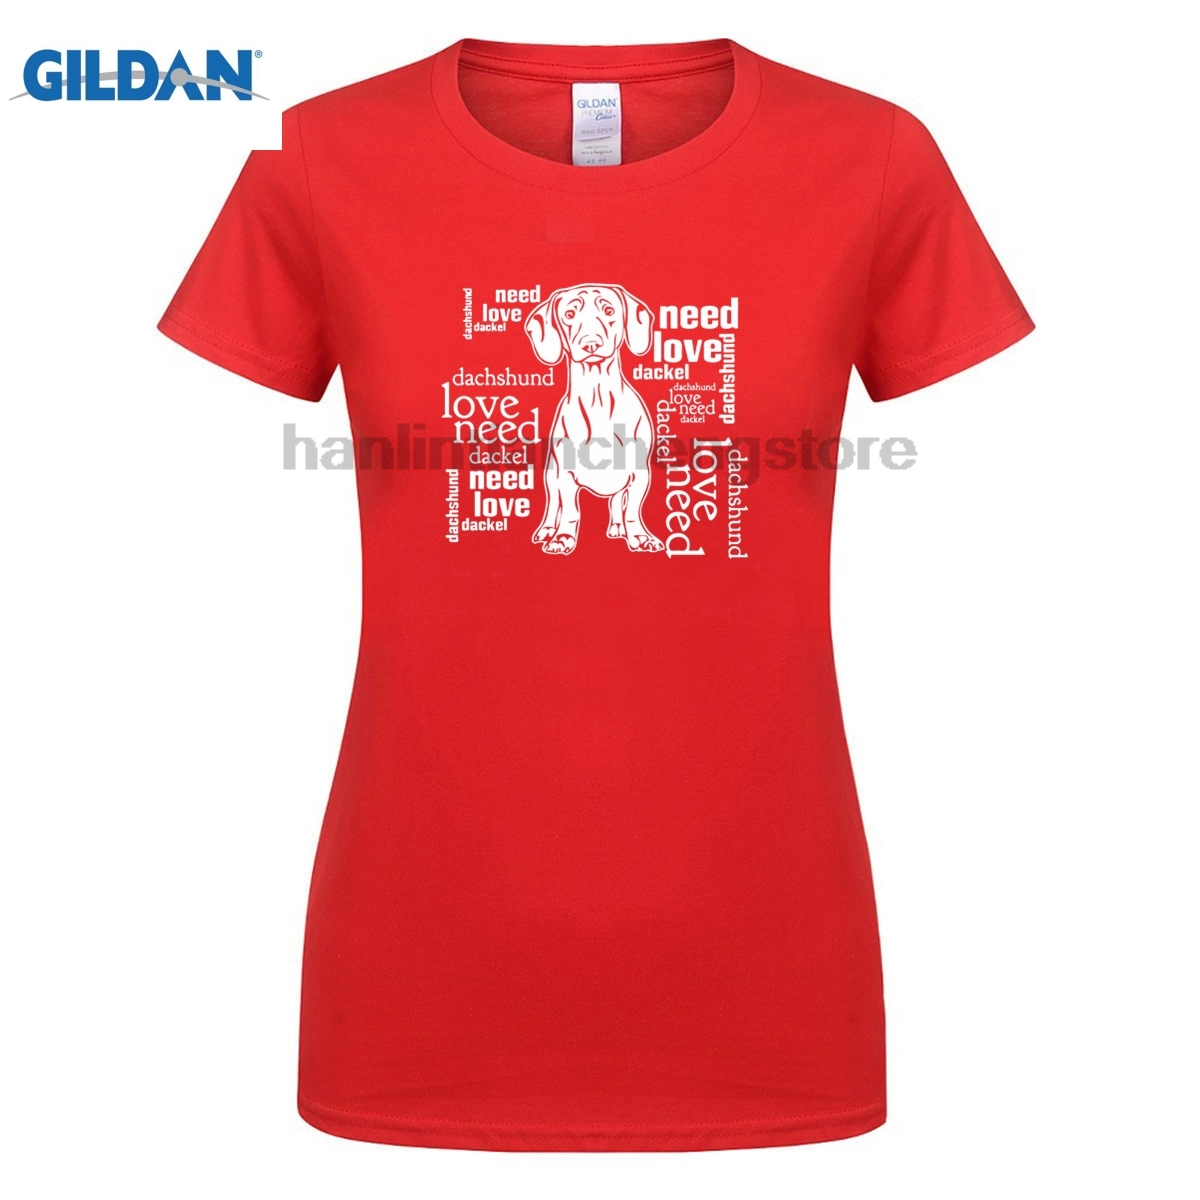 GILDAN 2018 Hot Sale New womens T Shirt New Fashion Funny O Neck T Shirt Hund Hunde Dack ...